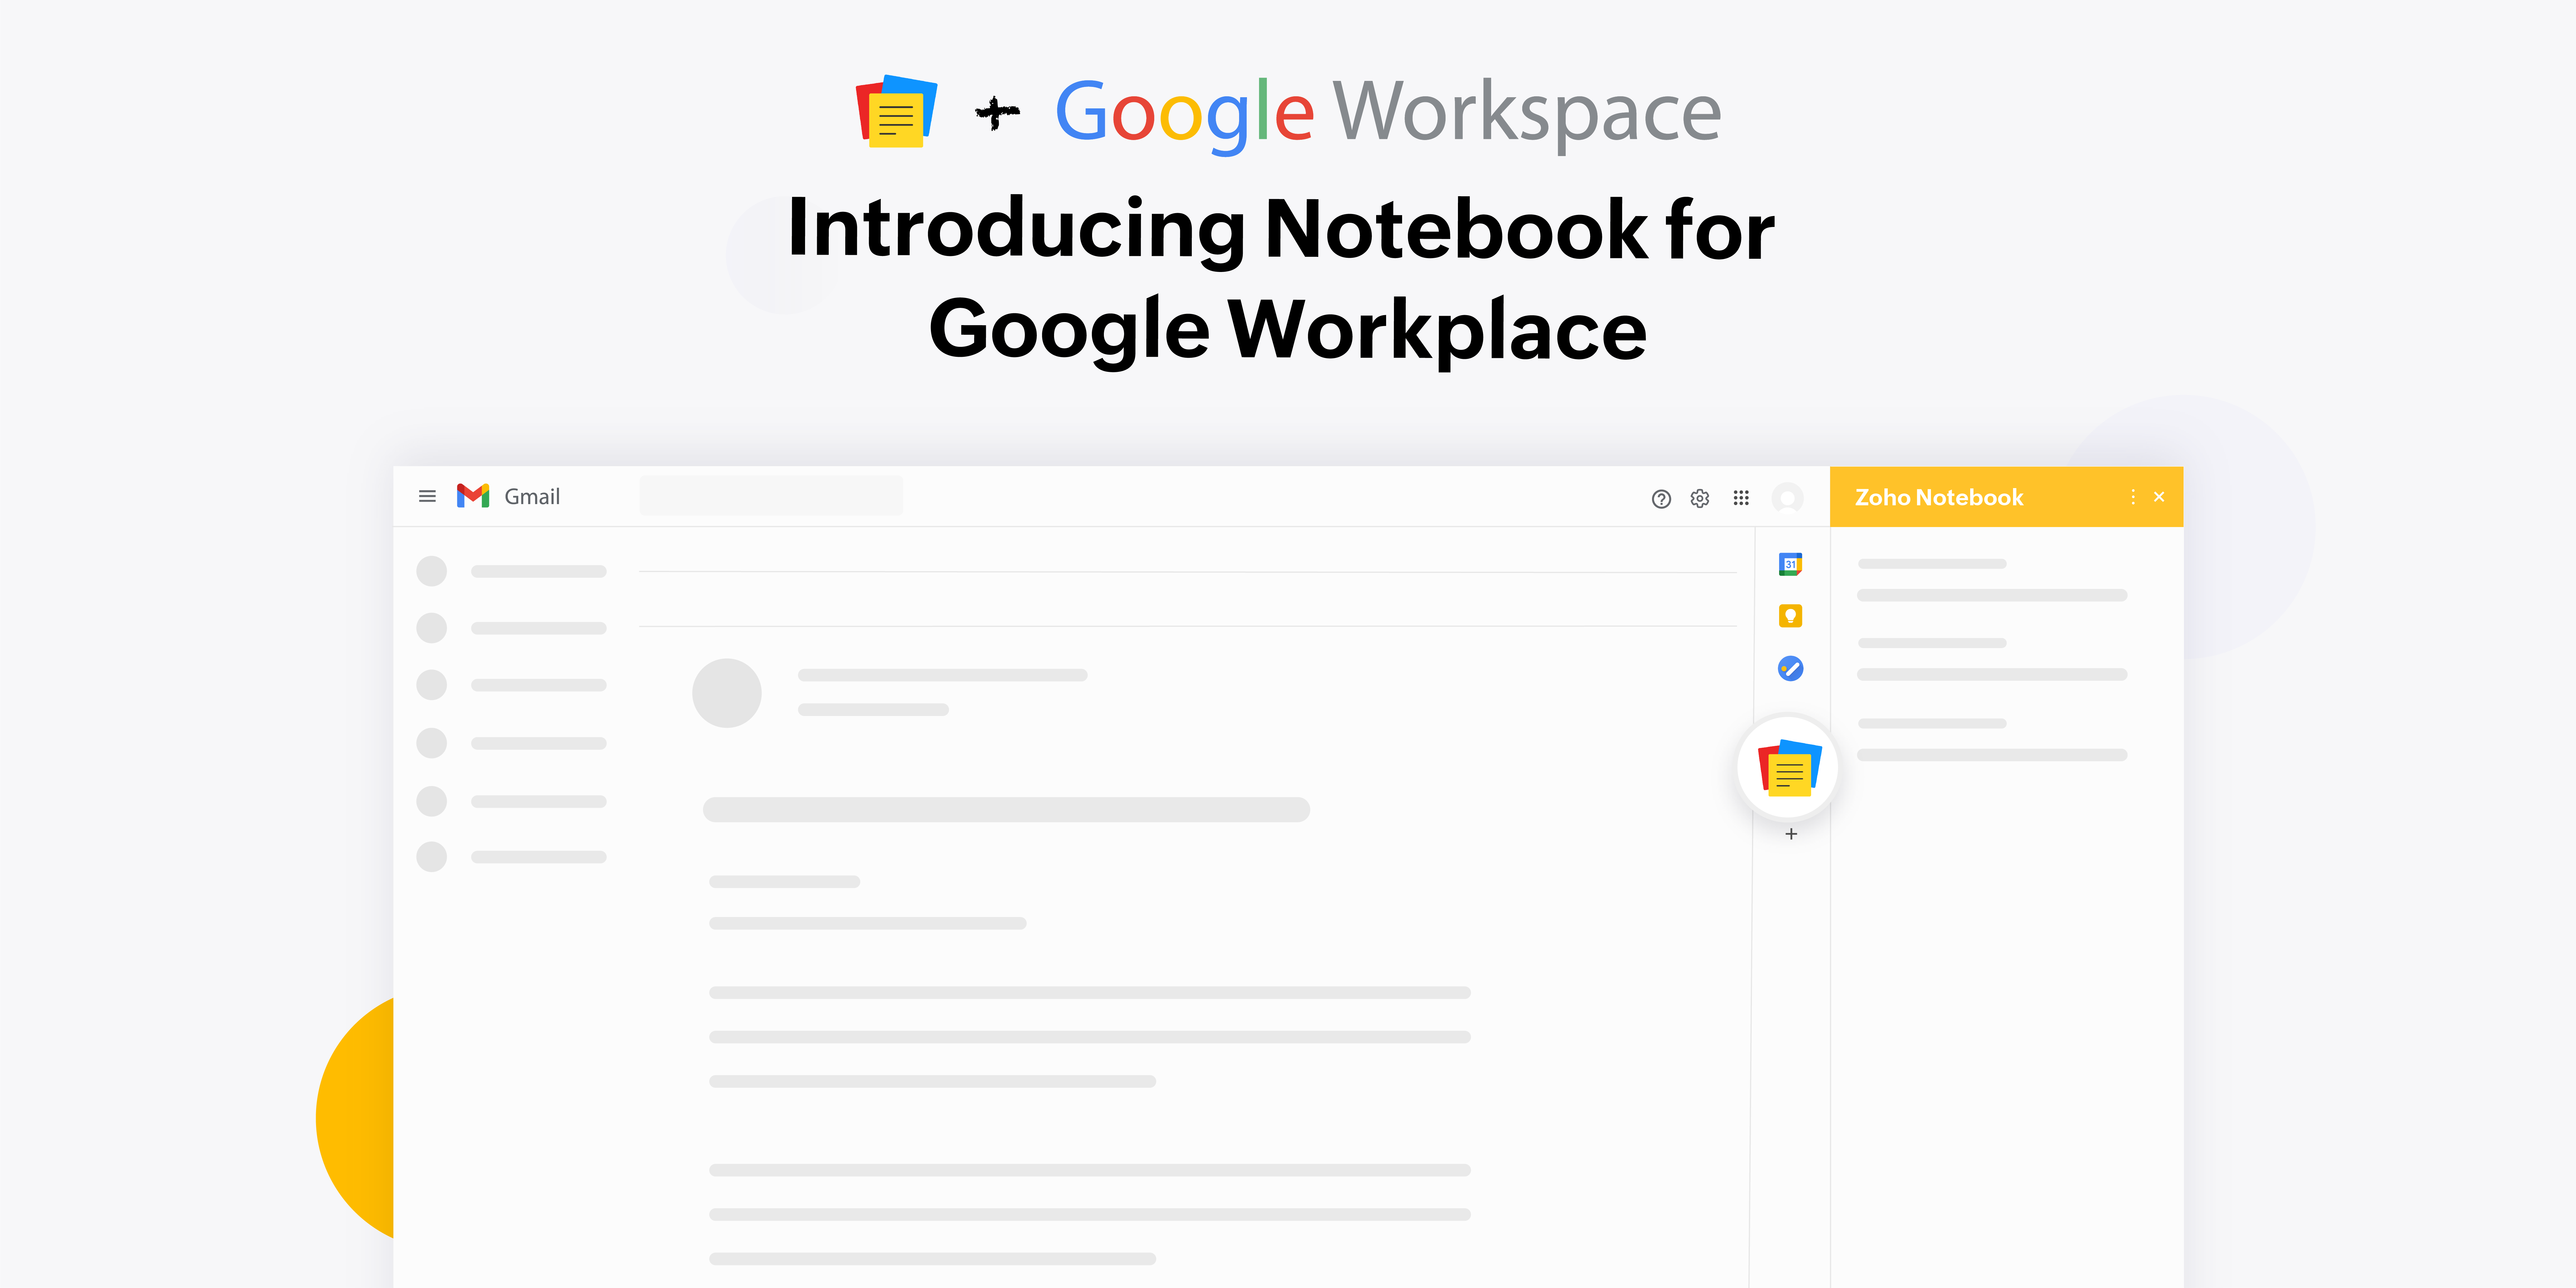 Introducing Notebook for Google Workspace